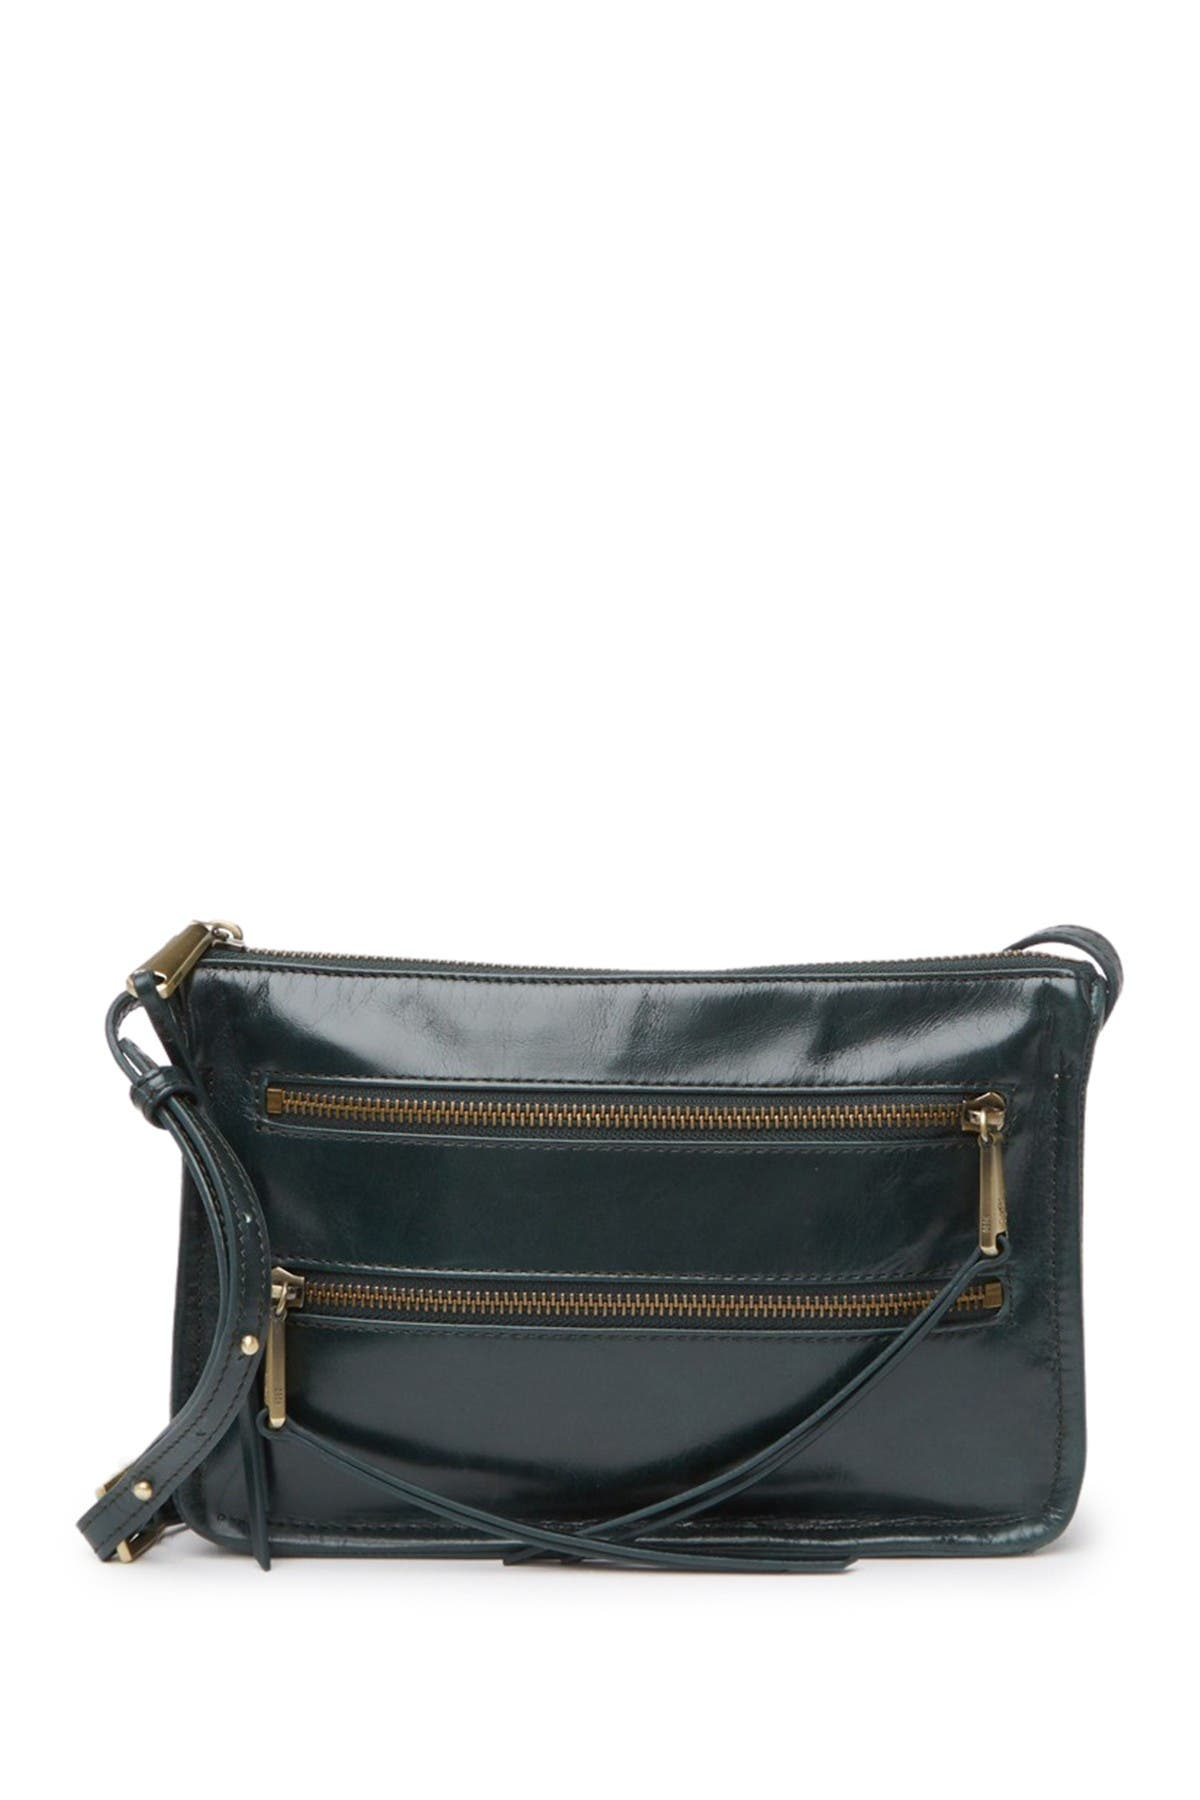 Image of Hobo Mission Leather Crossbody Bag